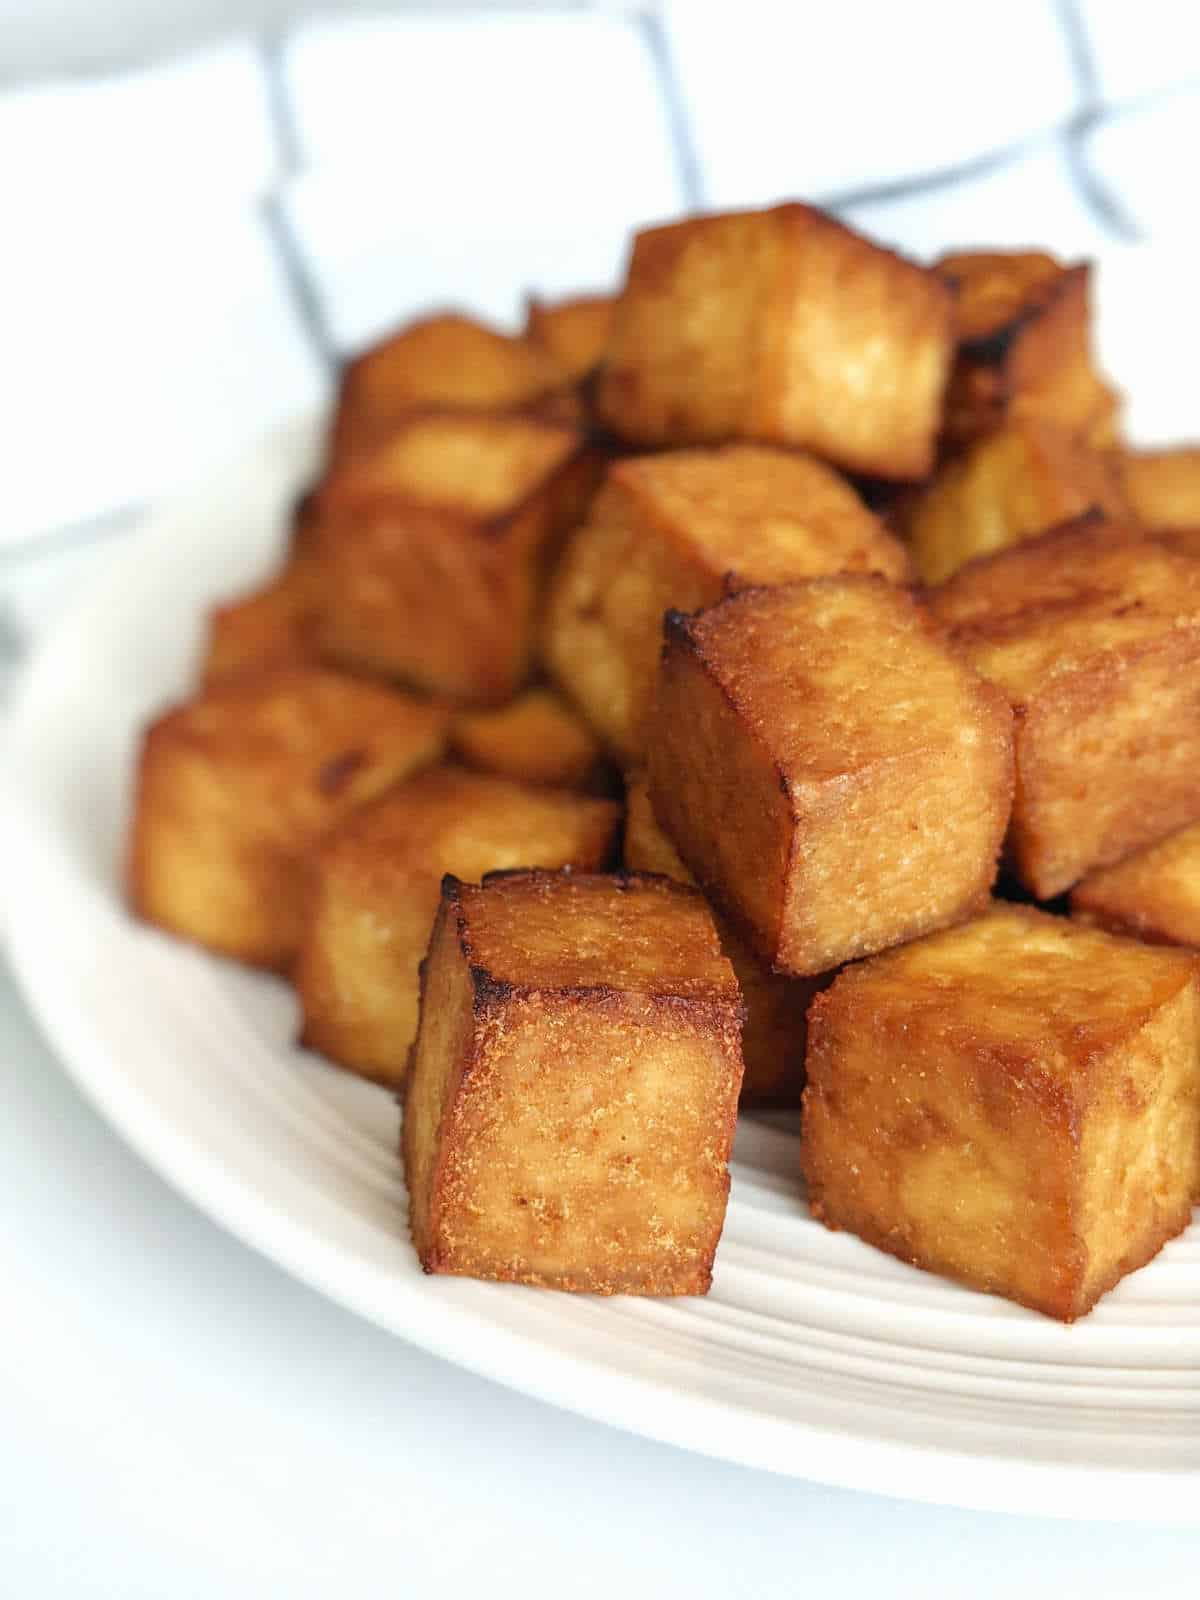 Crispy cubed tofu stacked on a plate.